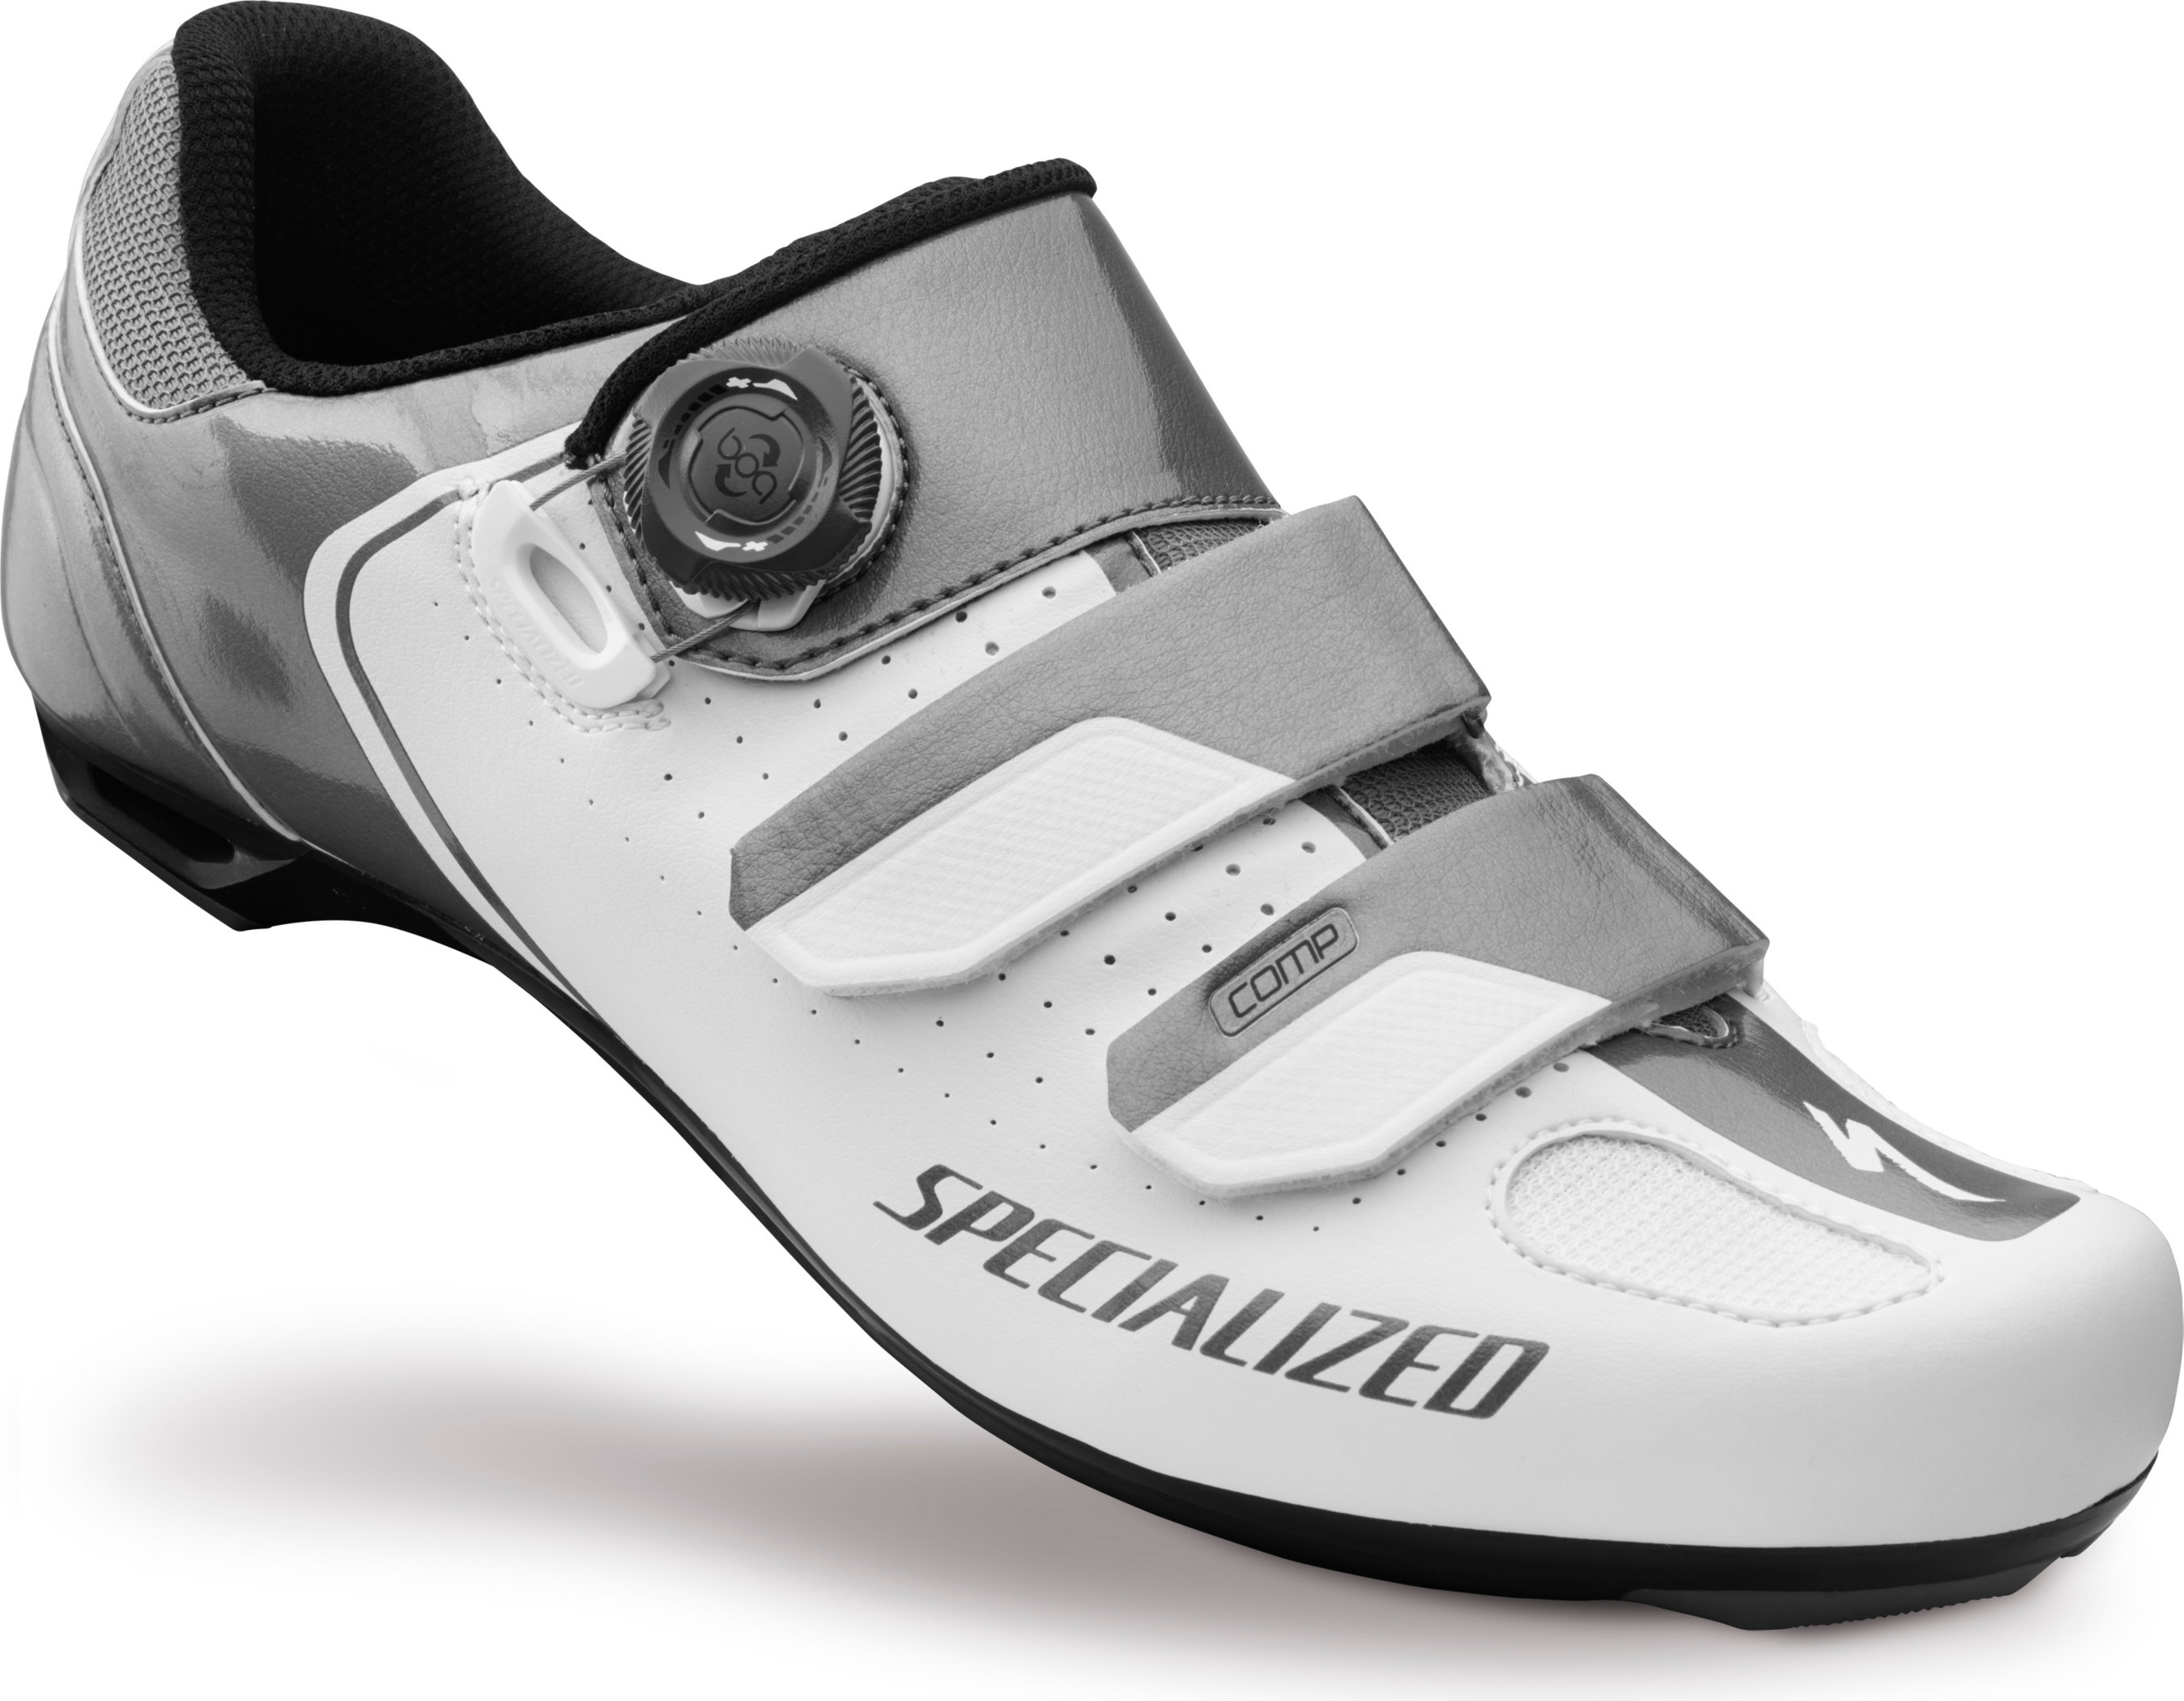 SPECIALIZED COMP RD SHOE WHT/TI 43.5/10.25 - Bikedreams & Dustbikes